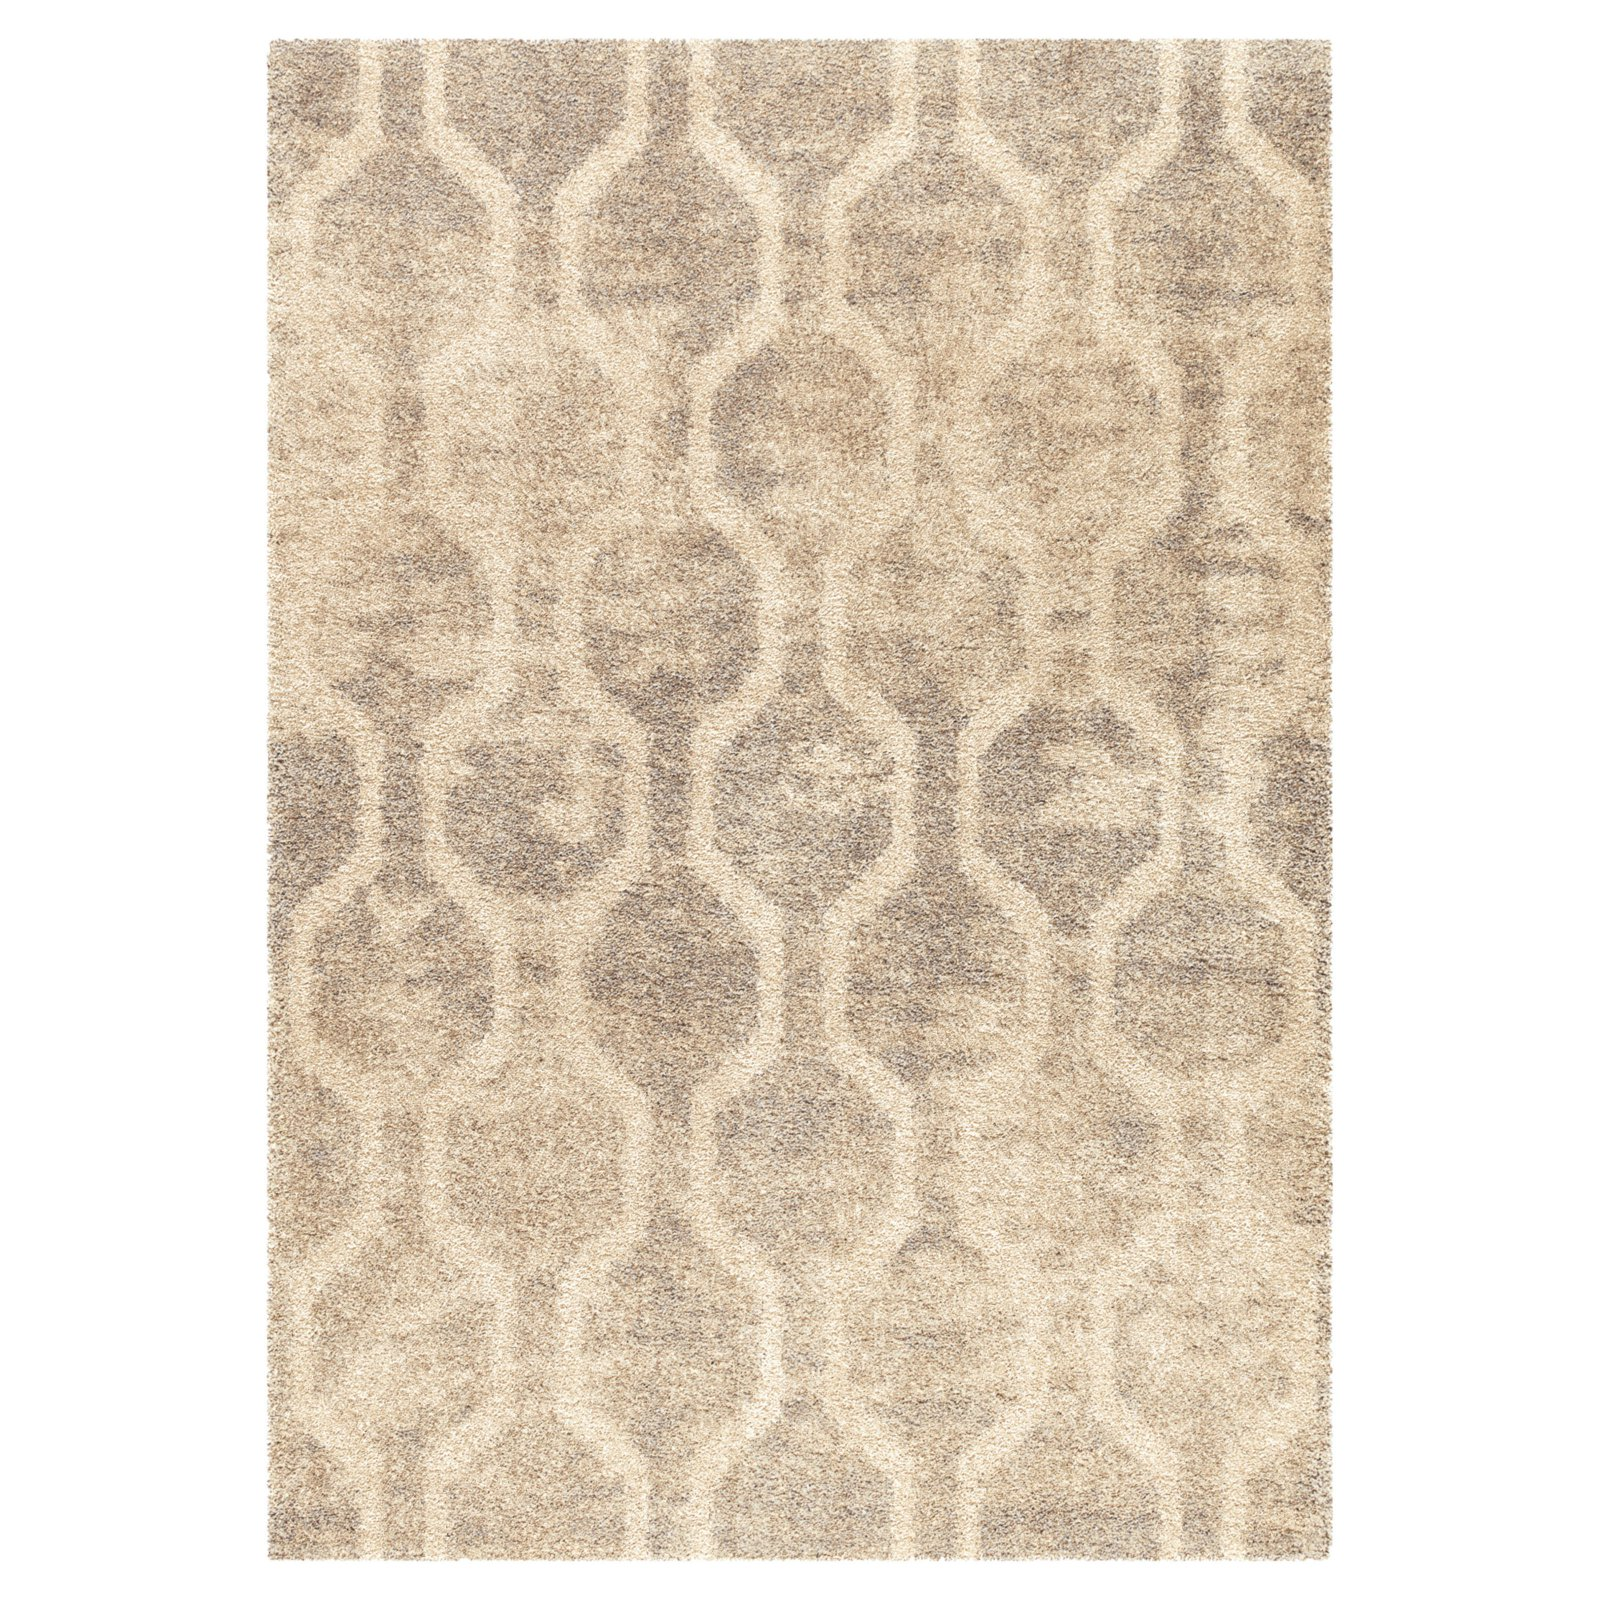 Orian Rugs Linked Up Plush Area Rug